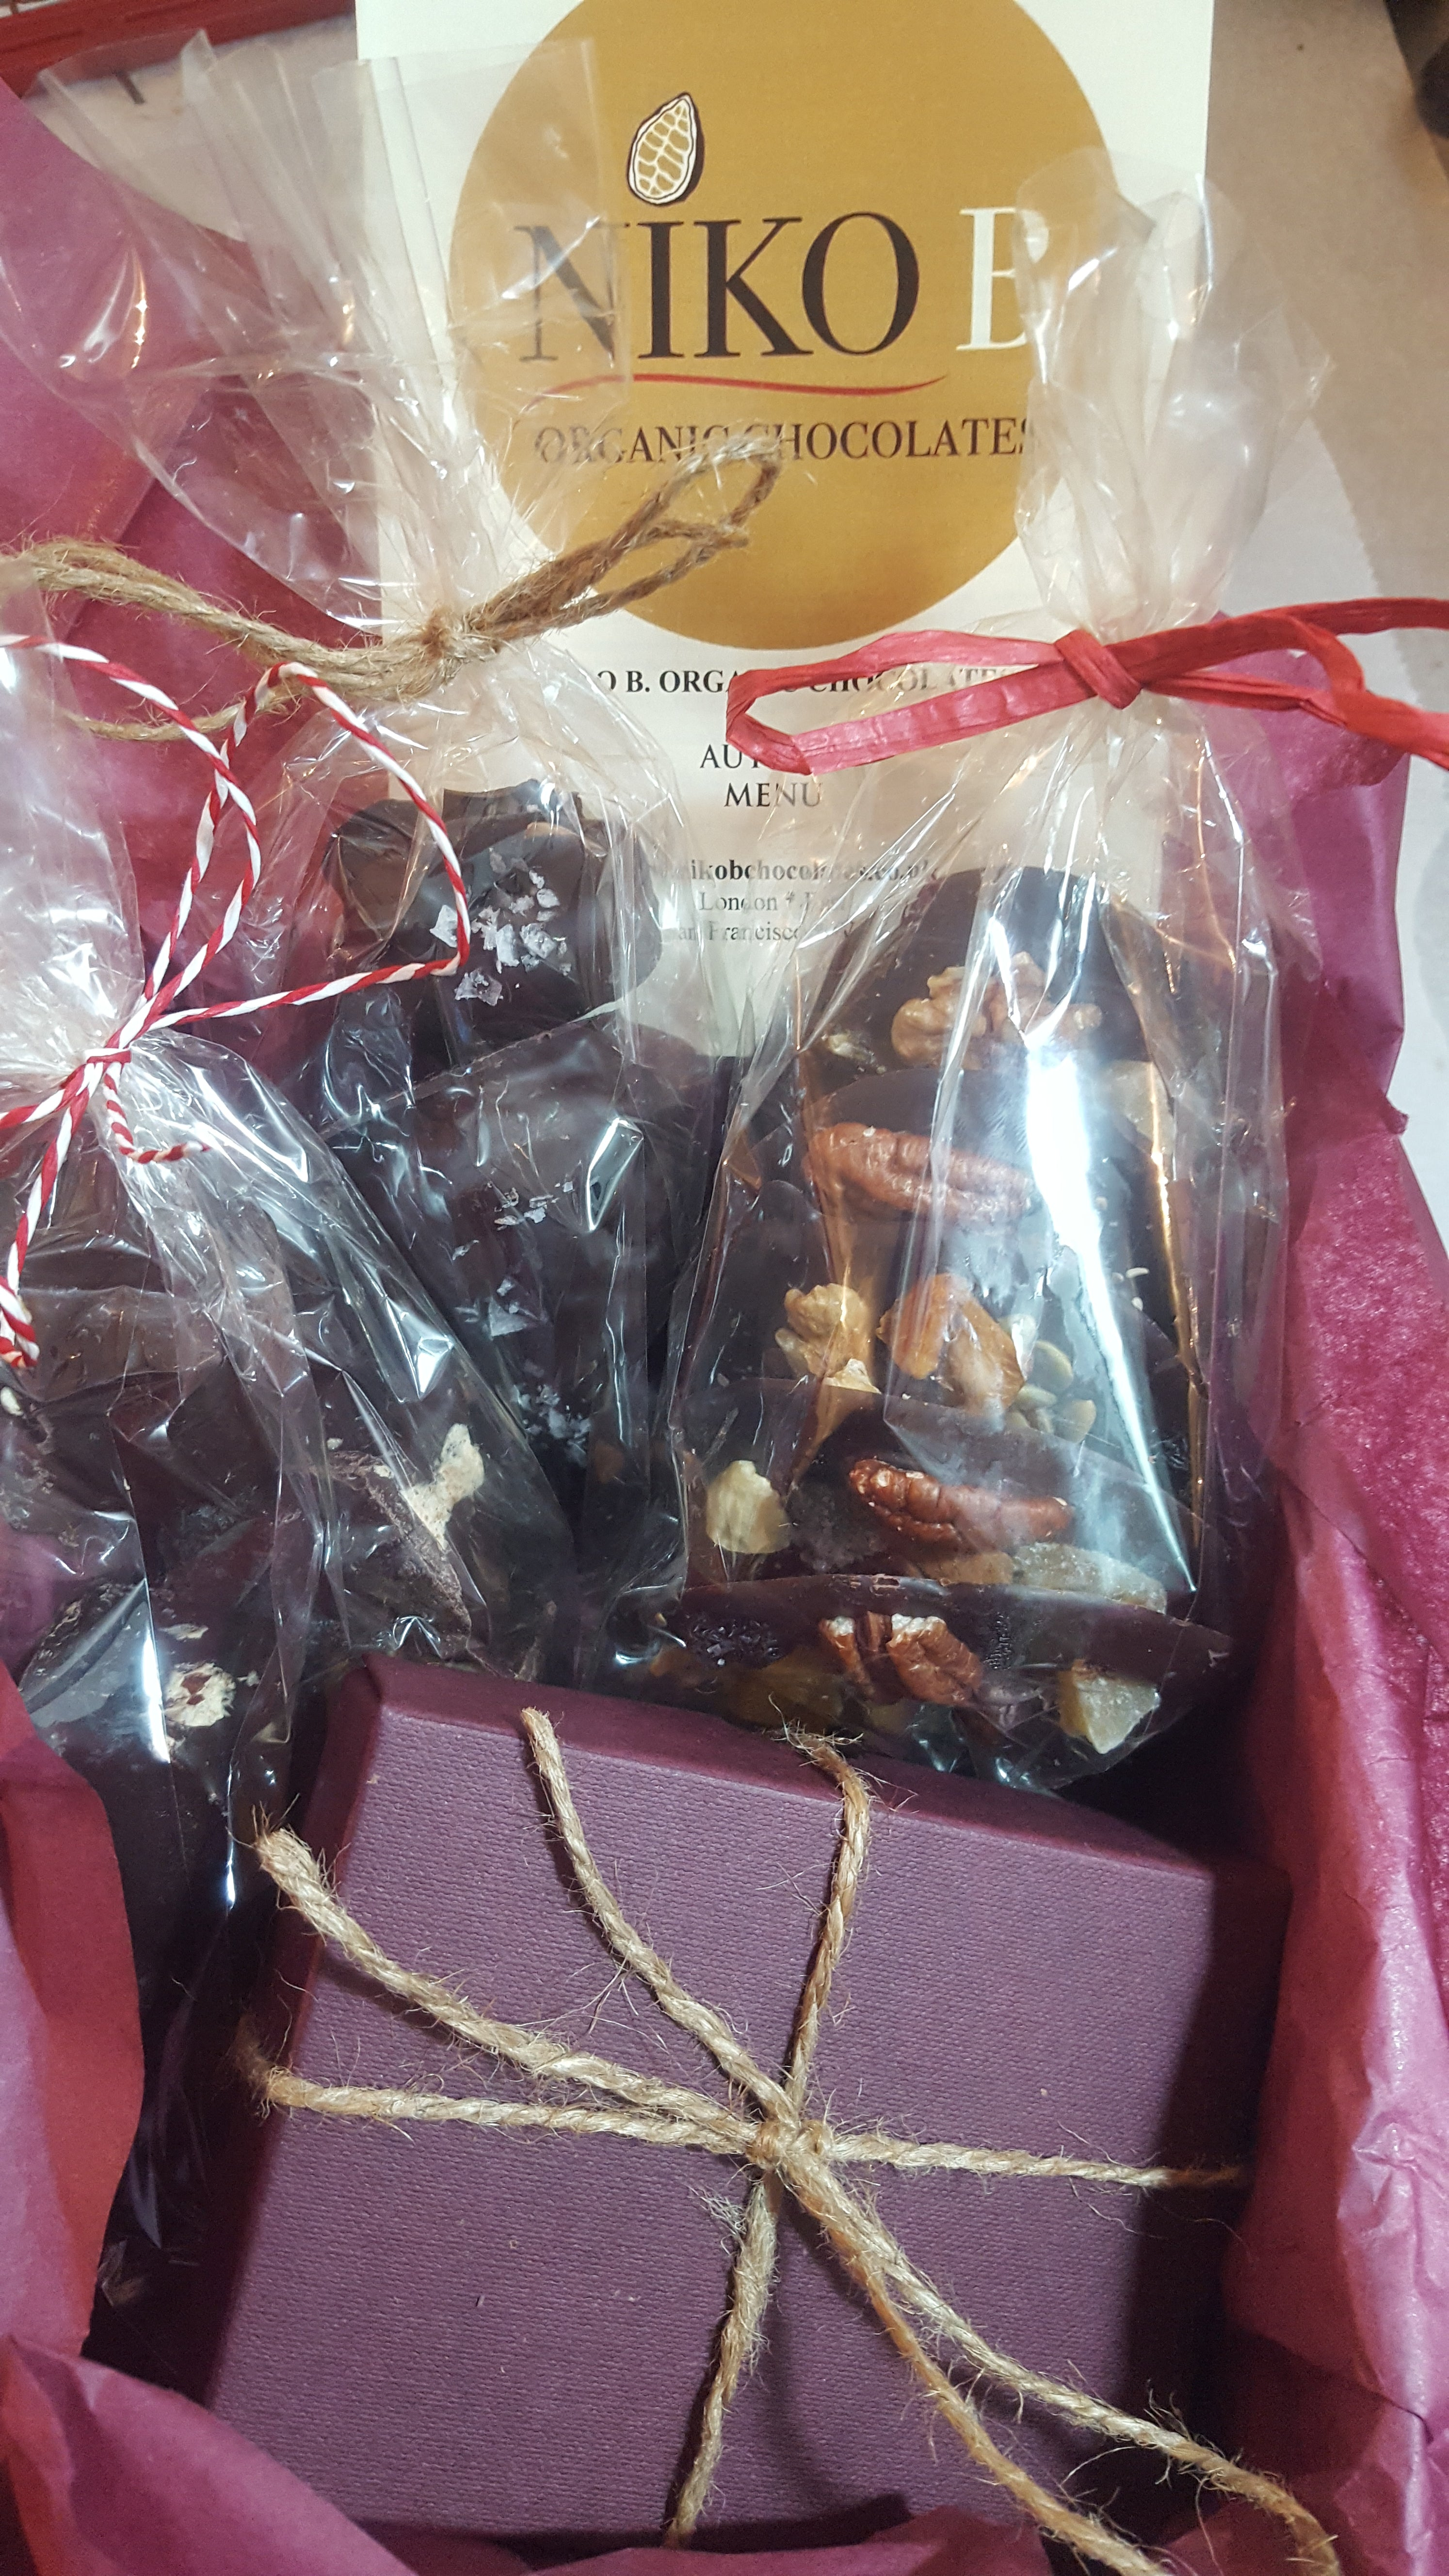 Salted Caramel Assortment Plus: Our Premium Gift Sets